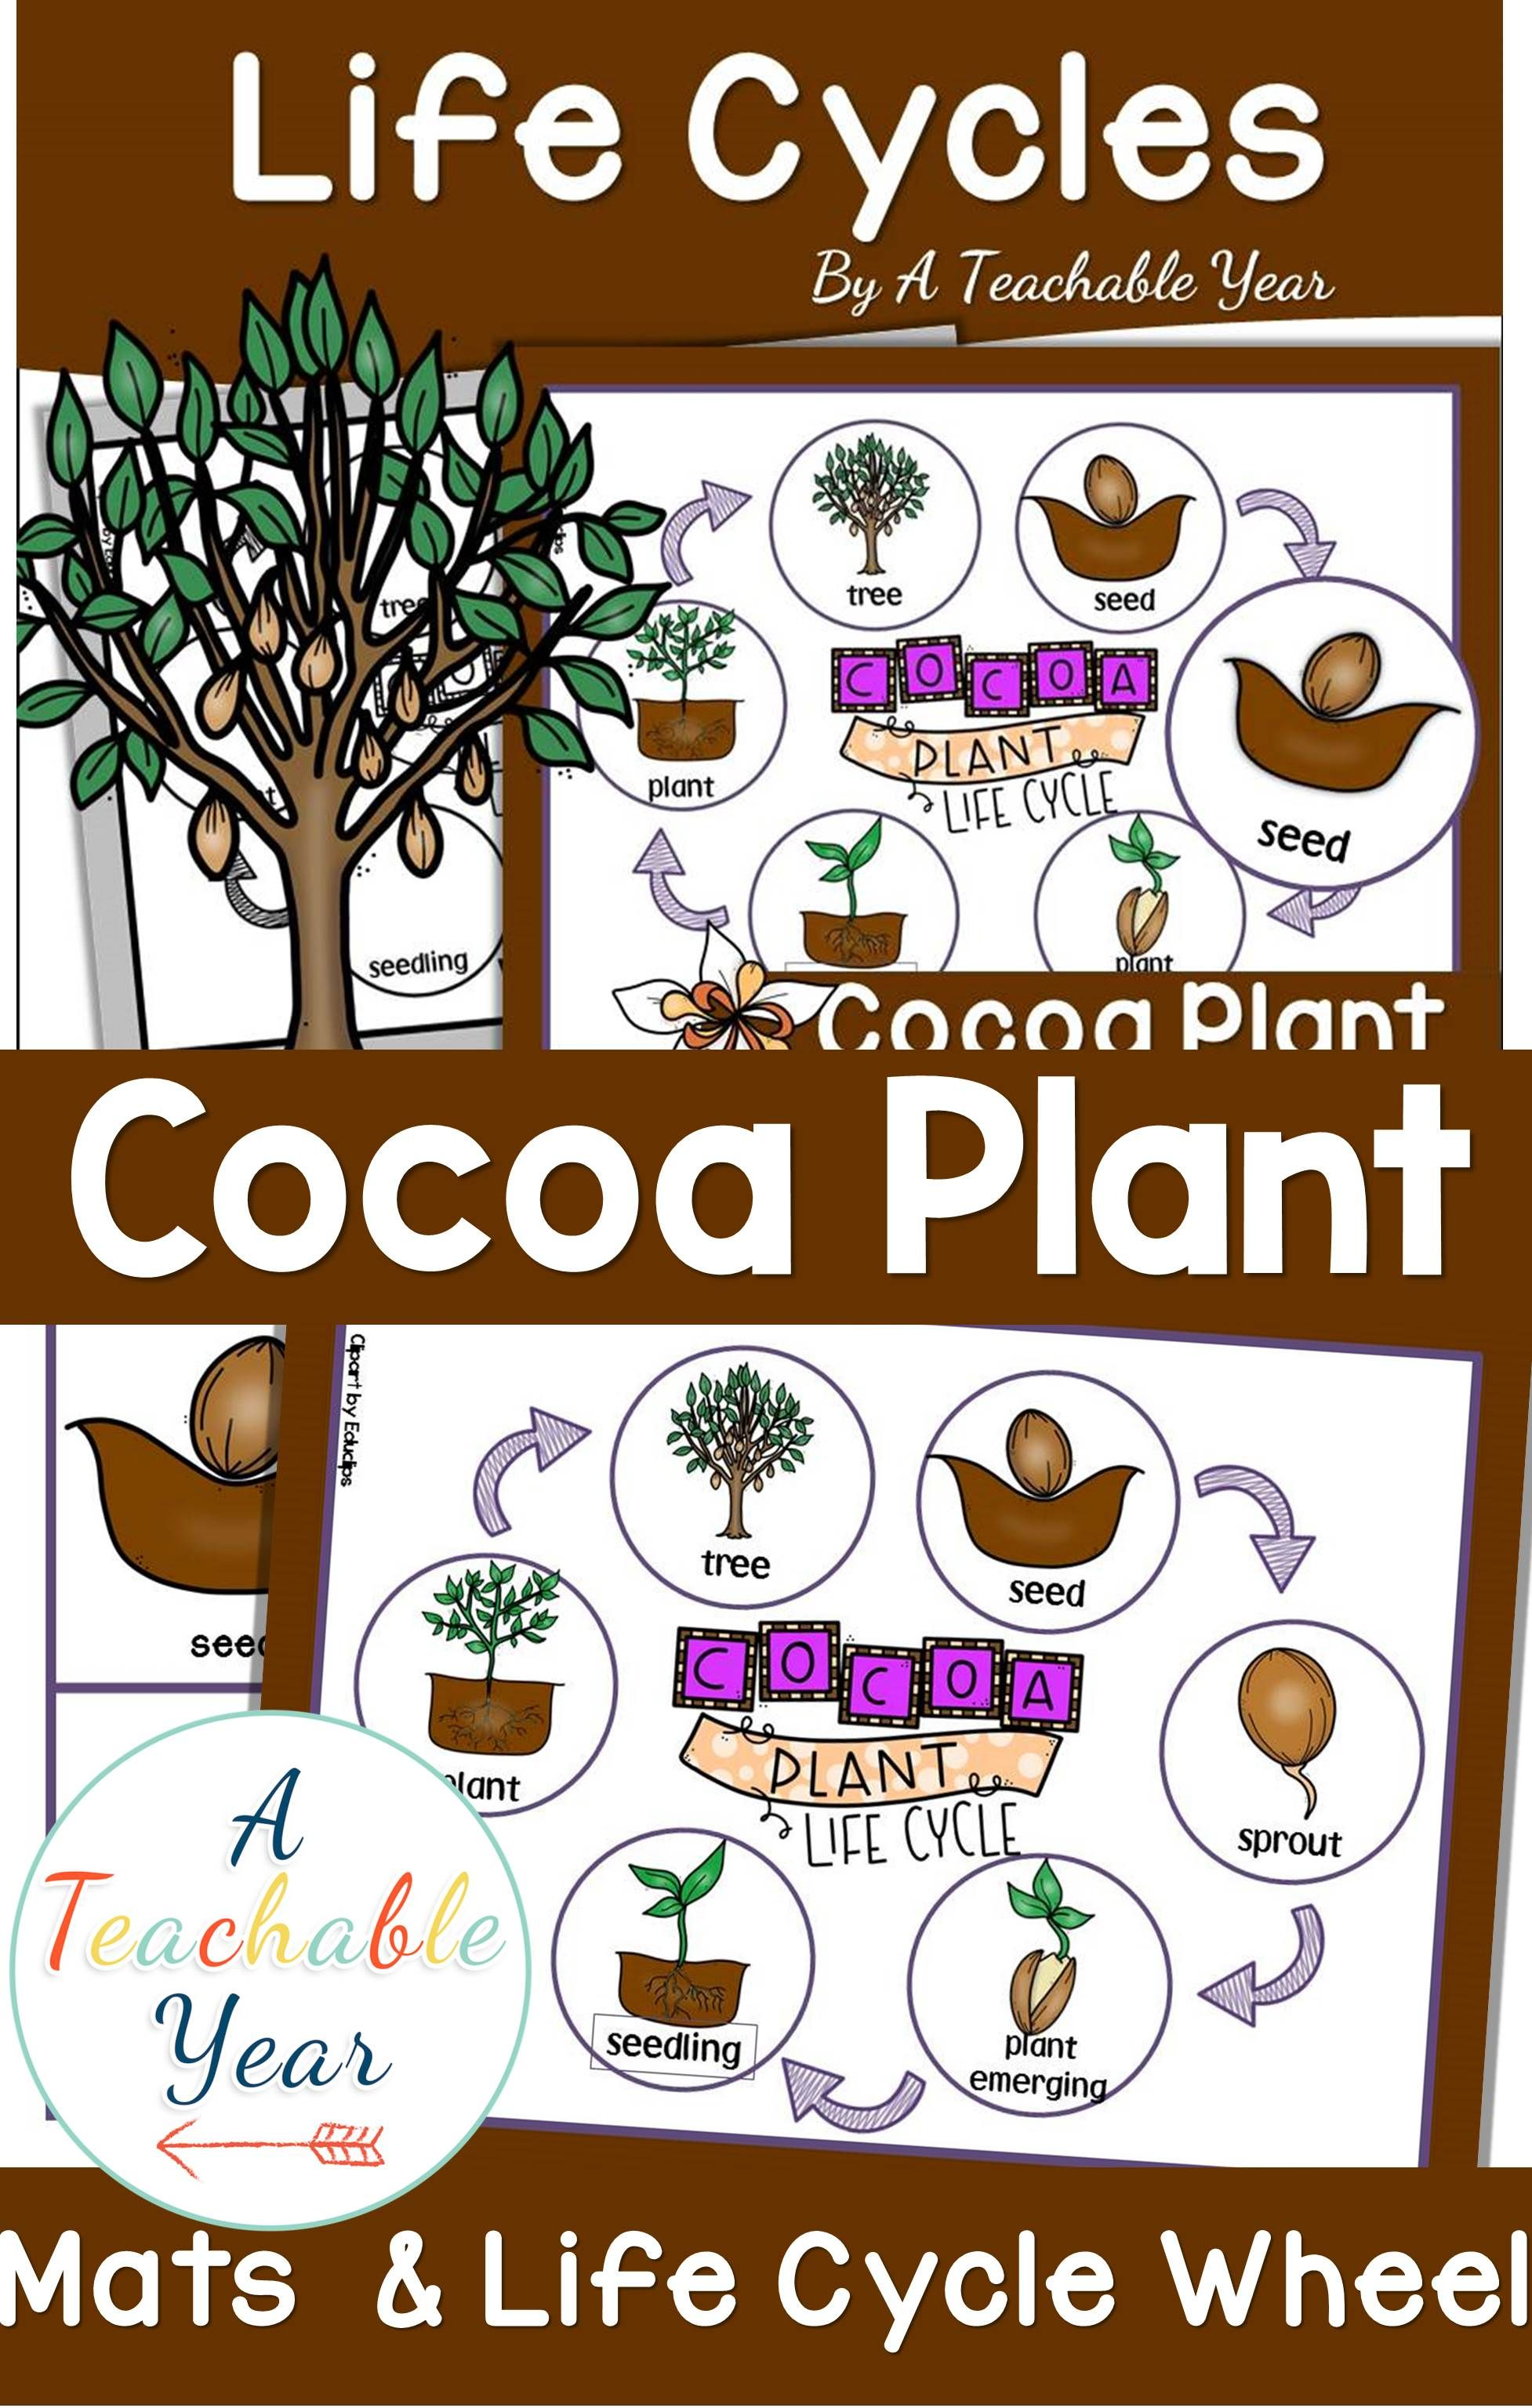 Cocoa Plant Life Cycle Pack Plant Life Cycle Cocoa Plant Plants Life Cycle Activities [ 3072 x 1954 Pixel ]